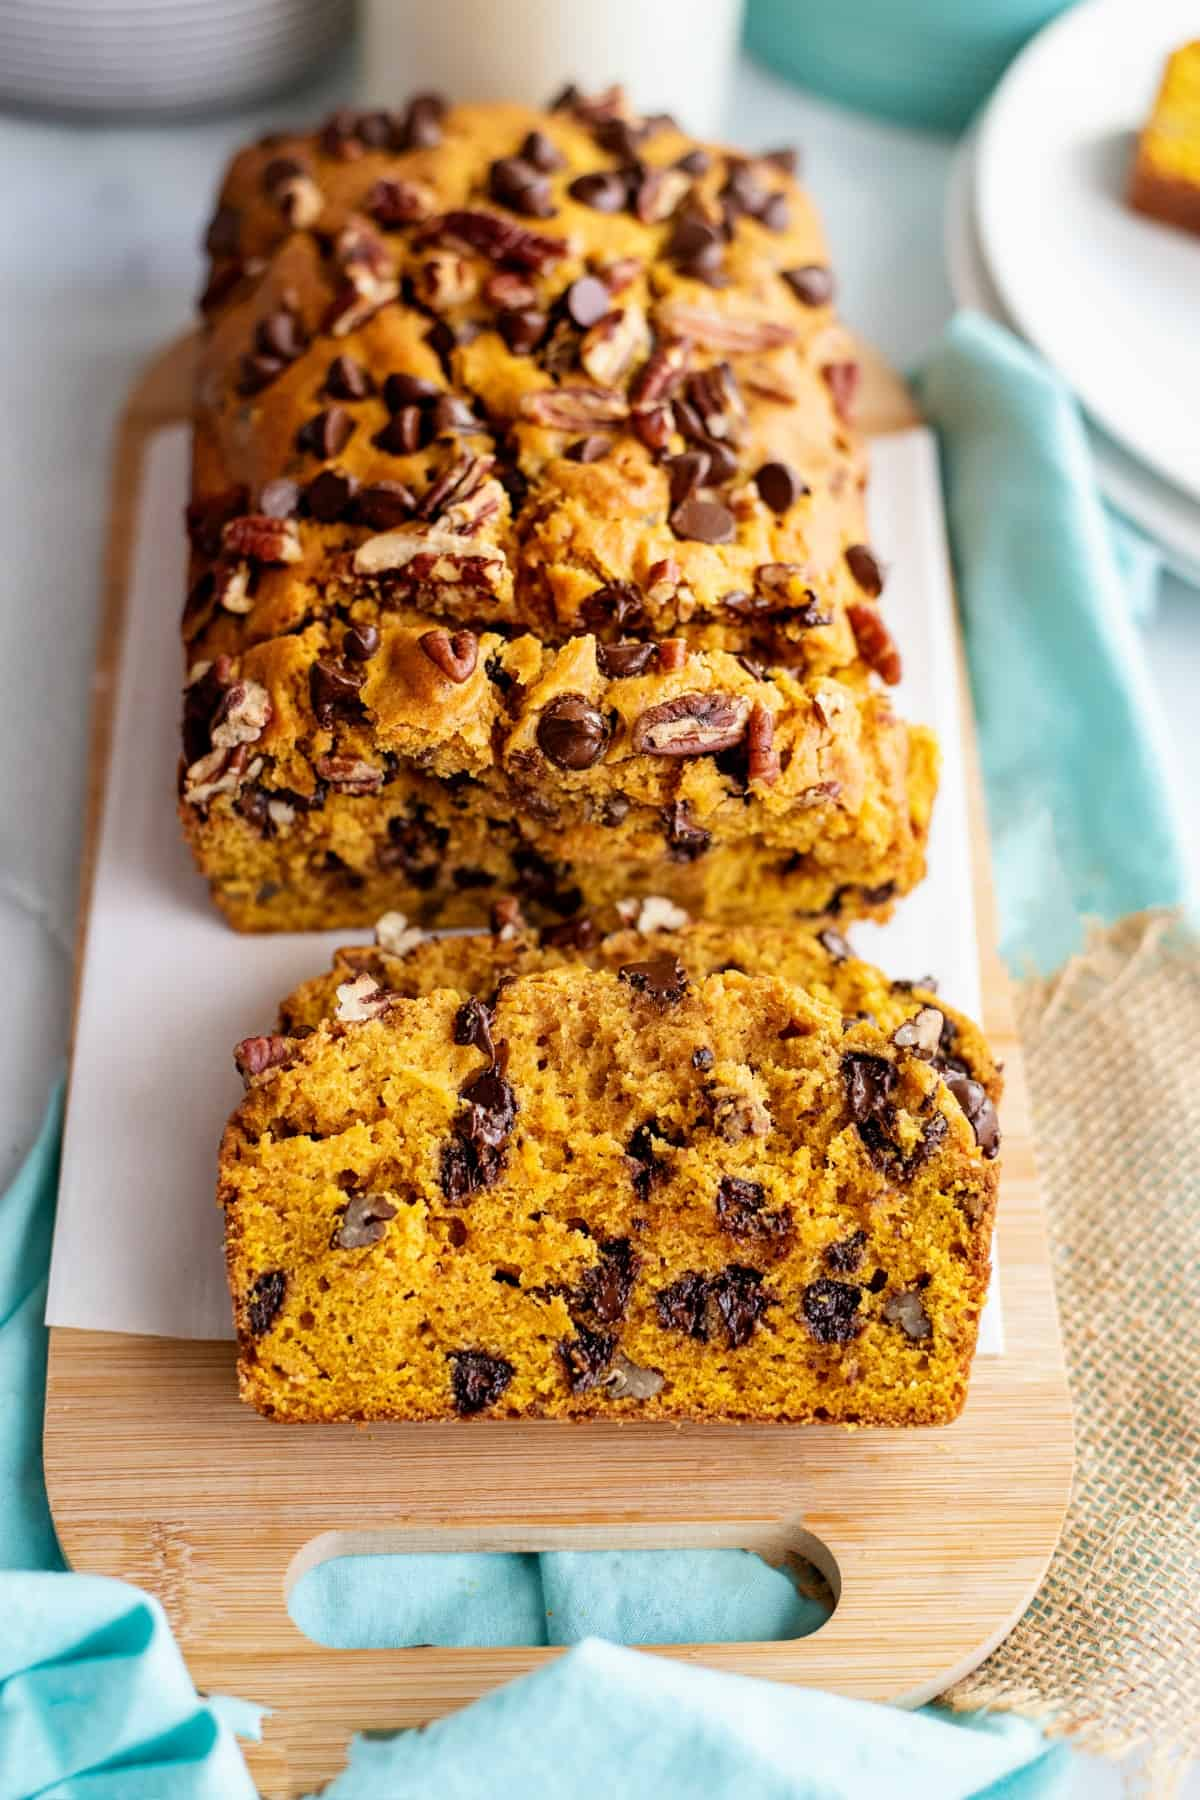 Sliced loaf of pumpkin bread with chocolate chips.